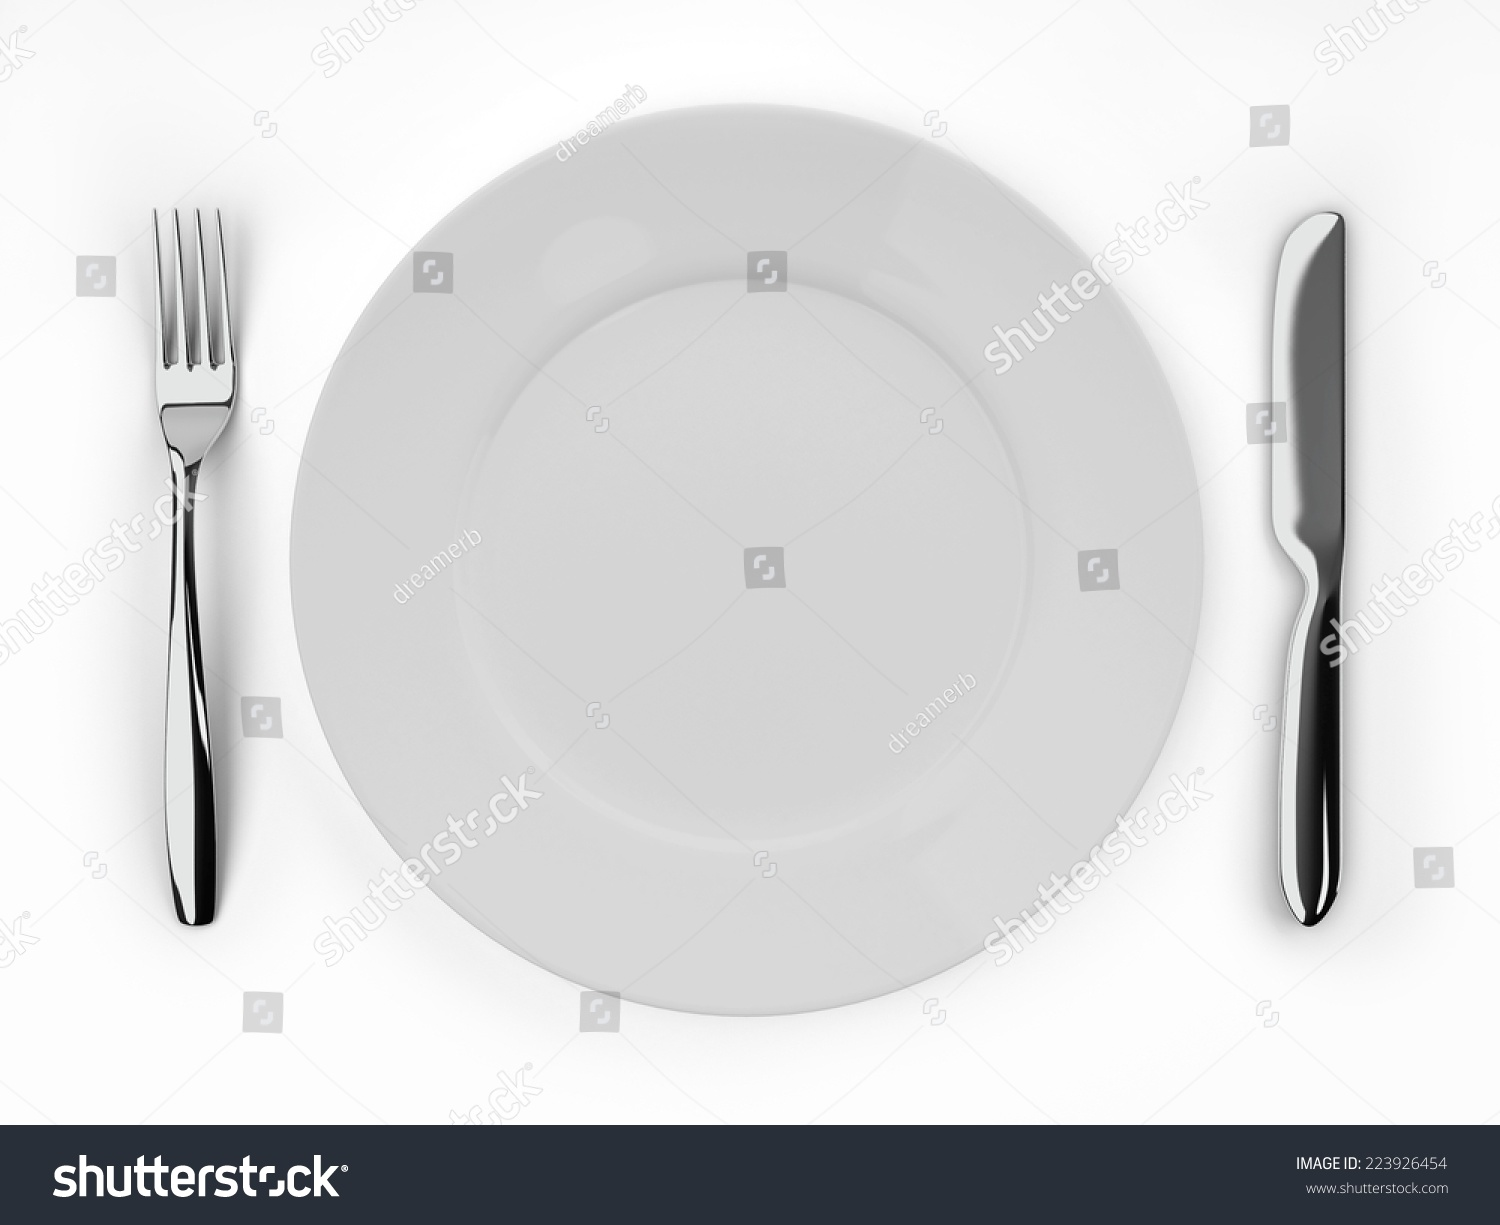 An empty white dish with knife and fork on a table - Empty Dinner Plate Knife And Fork